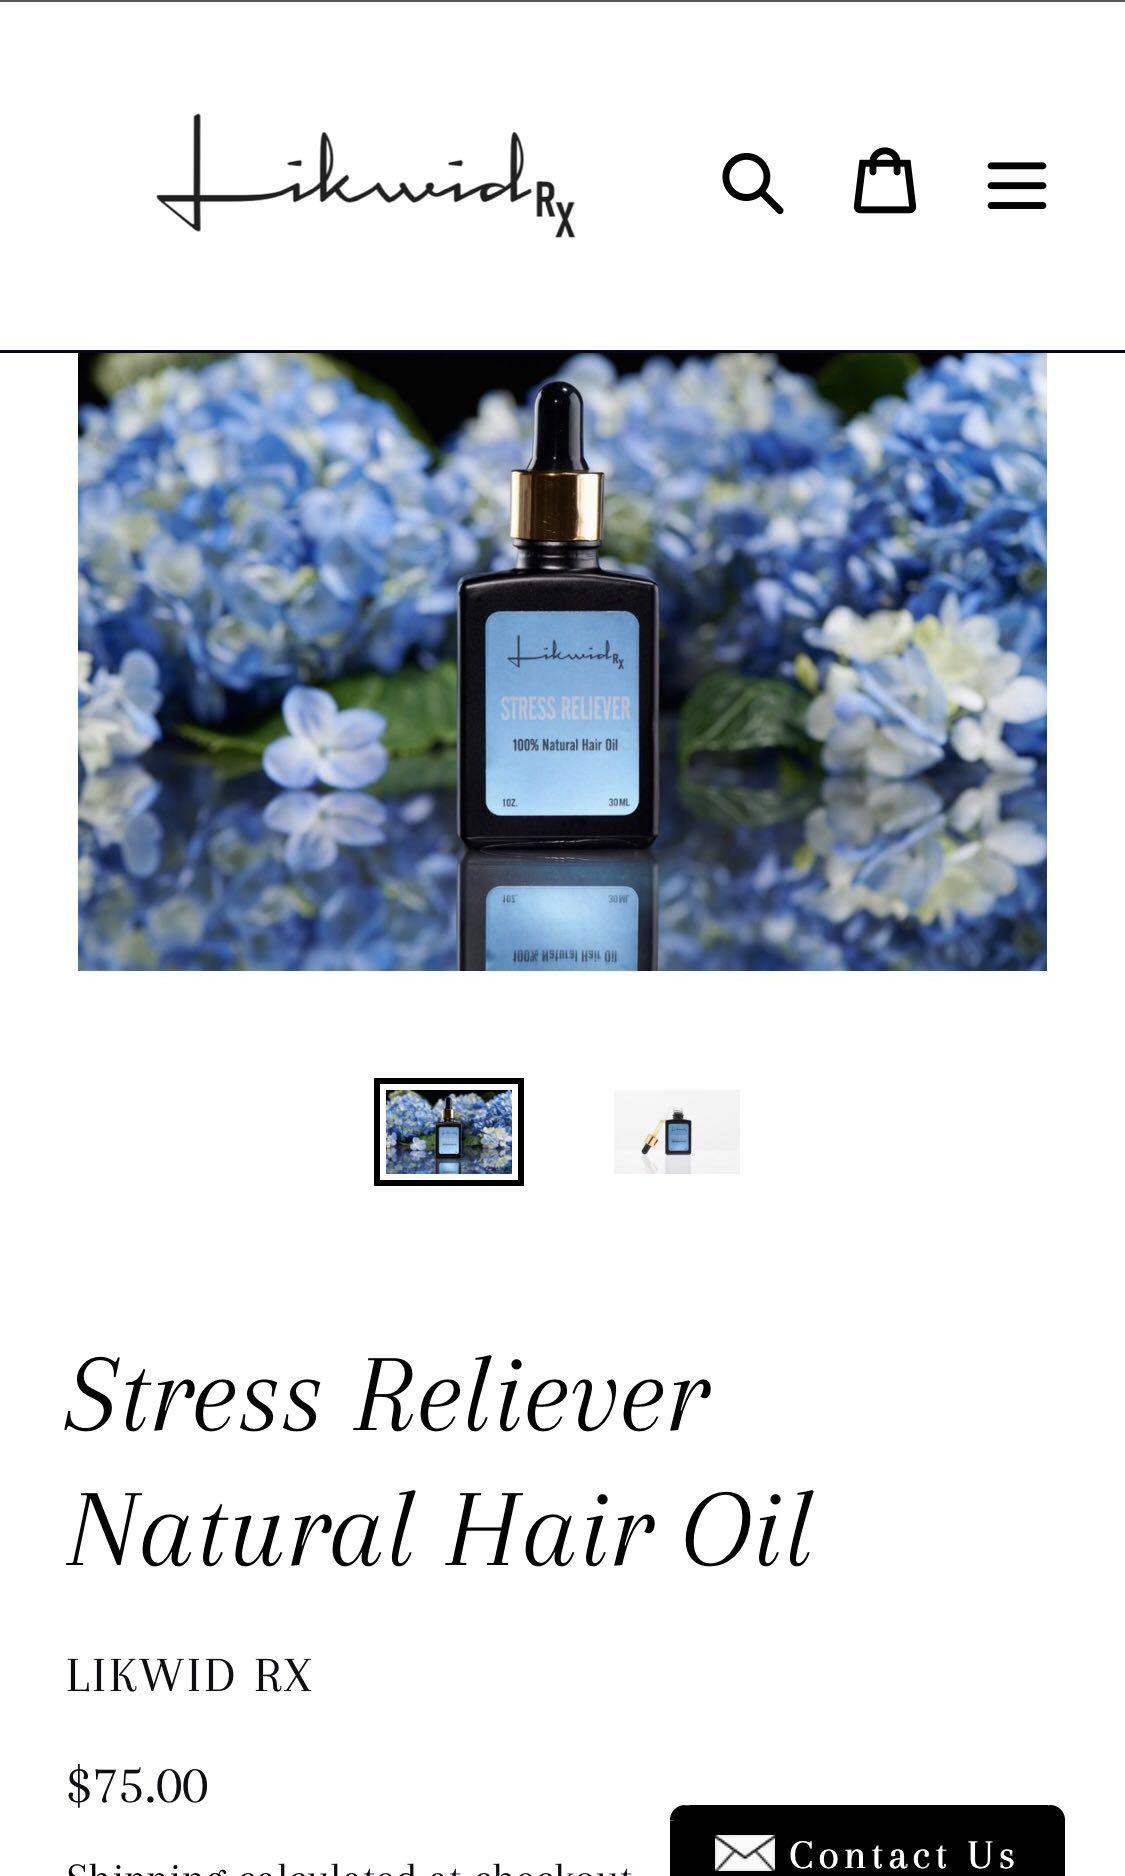 Stress reliever hair oil